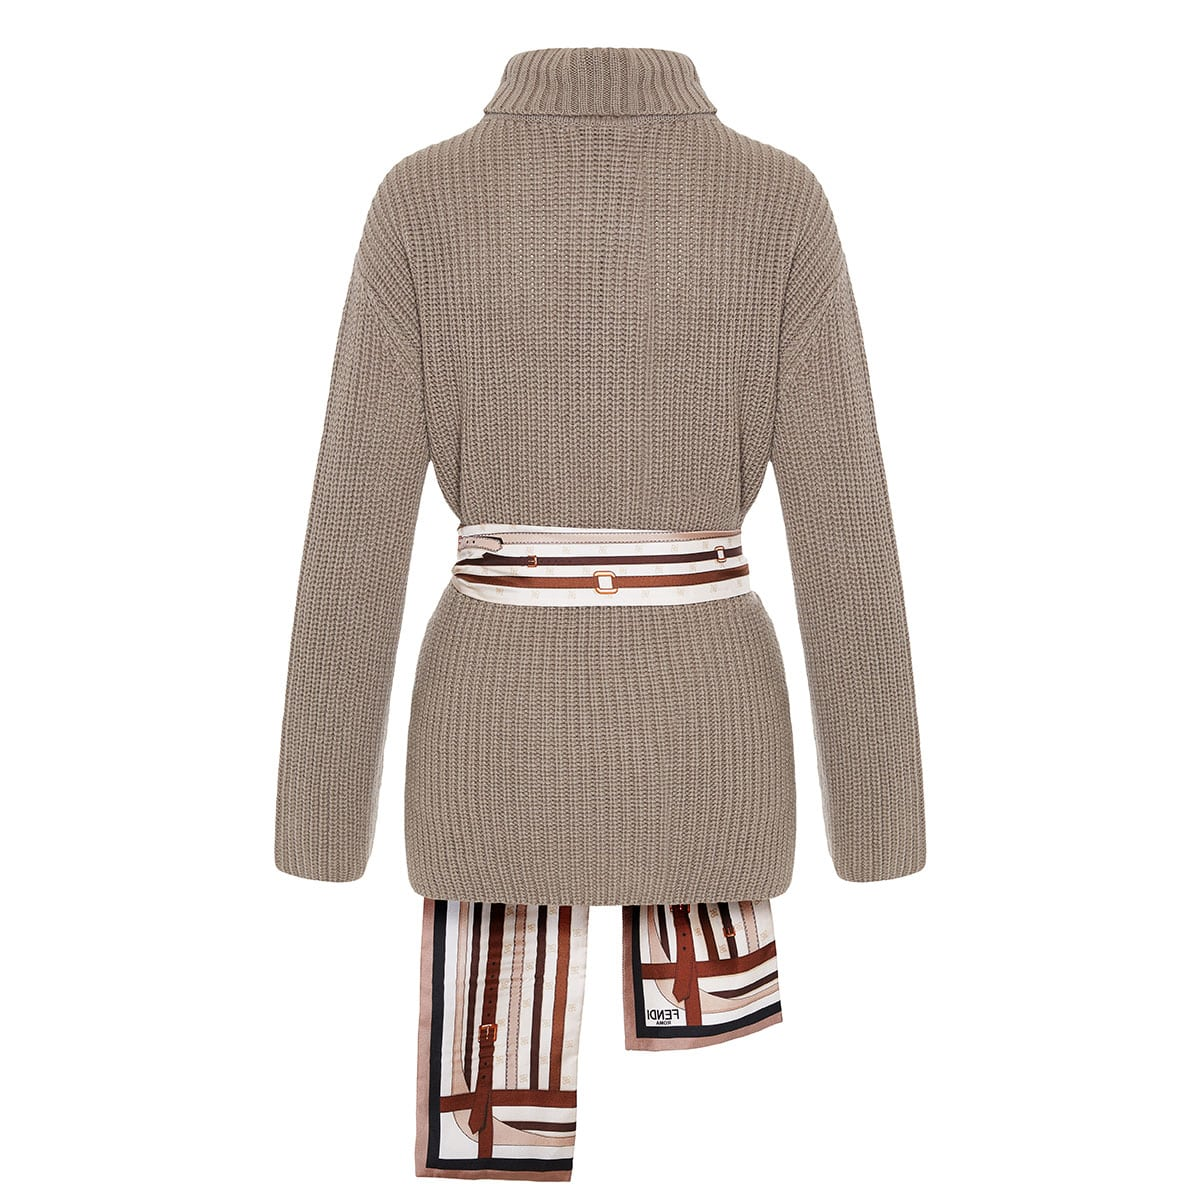 Oversized sweater with scarf belt